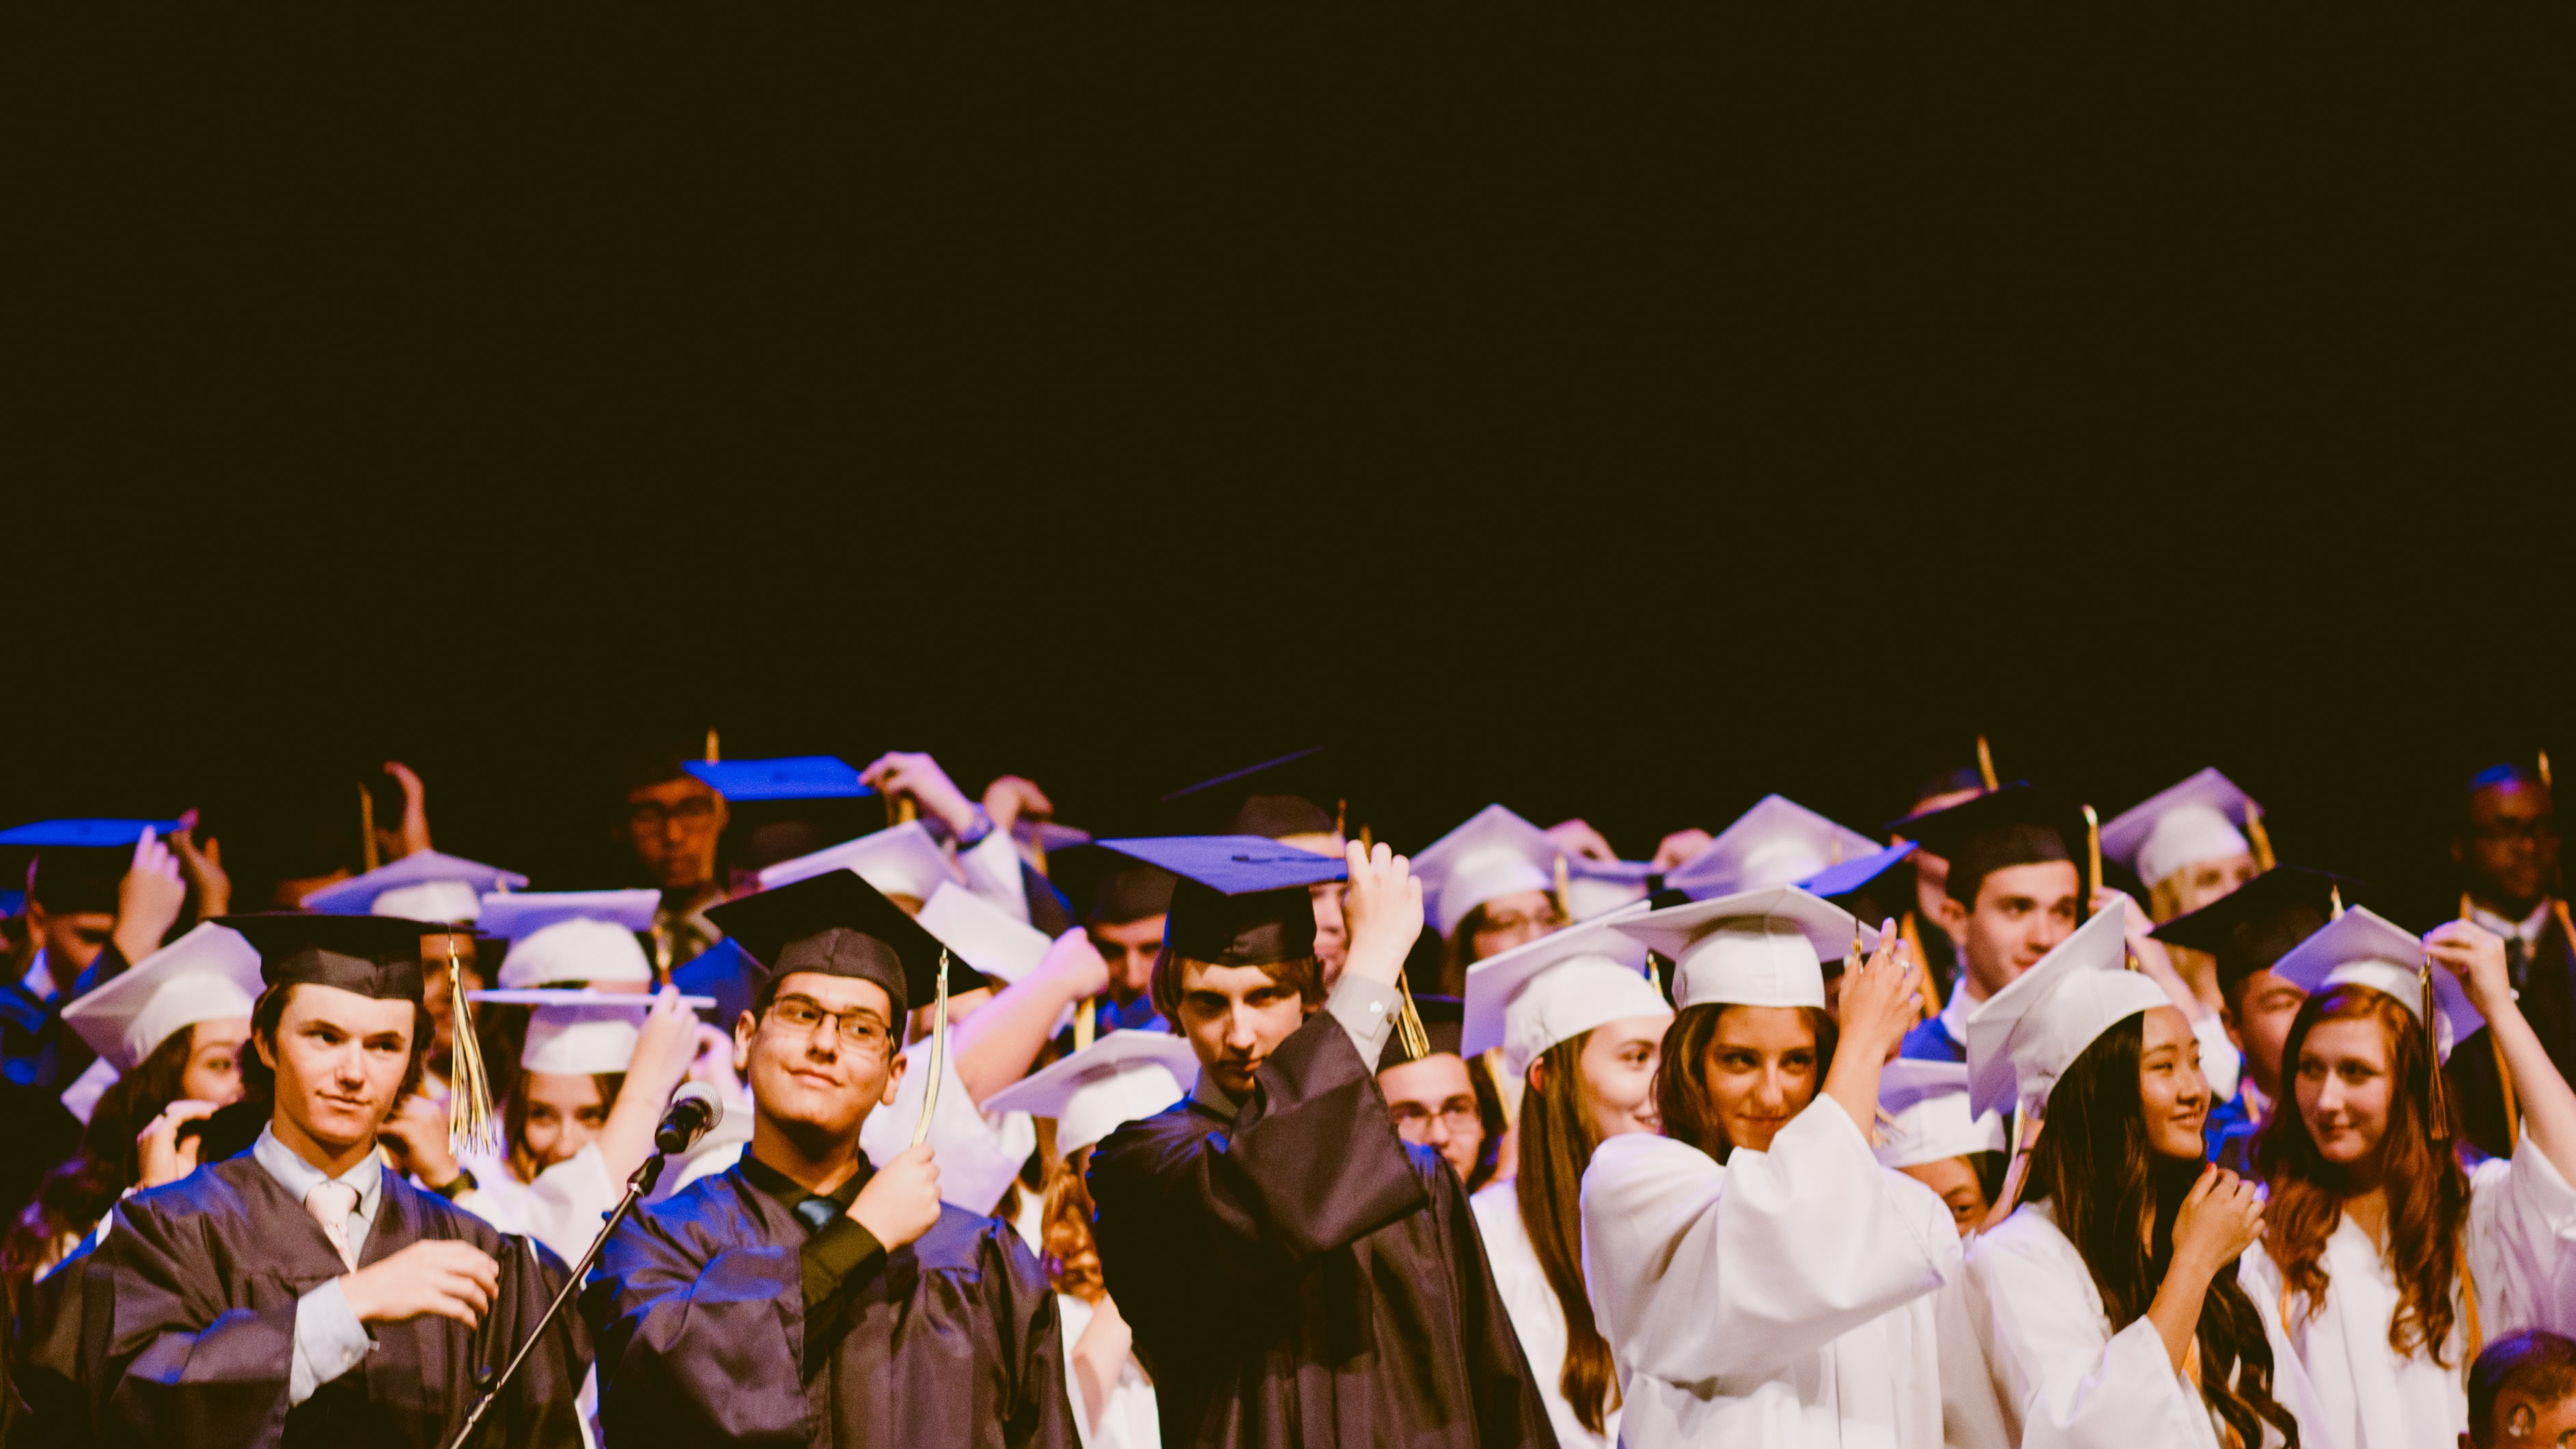 men and women wearing black and white graduation dress and mortar cap inside building